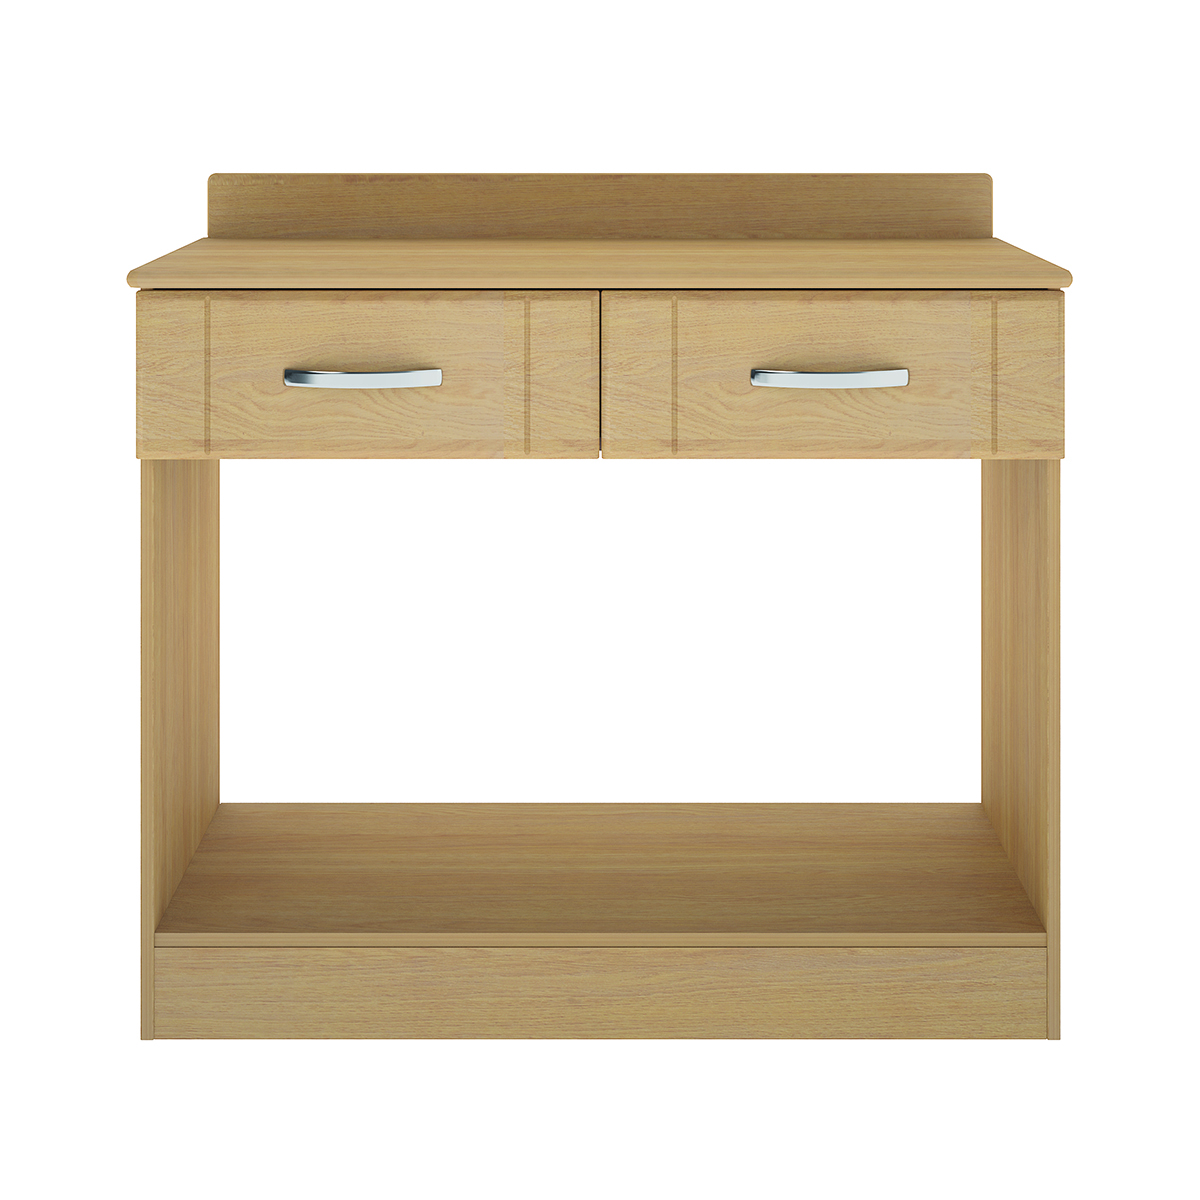 Imola Console Table With Drawers Space Creations